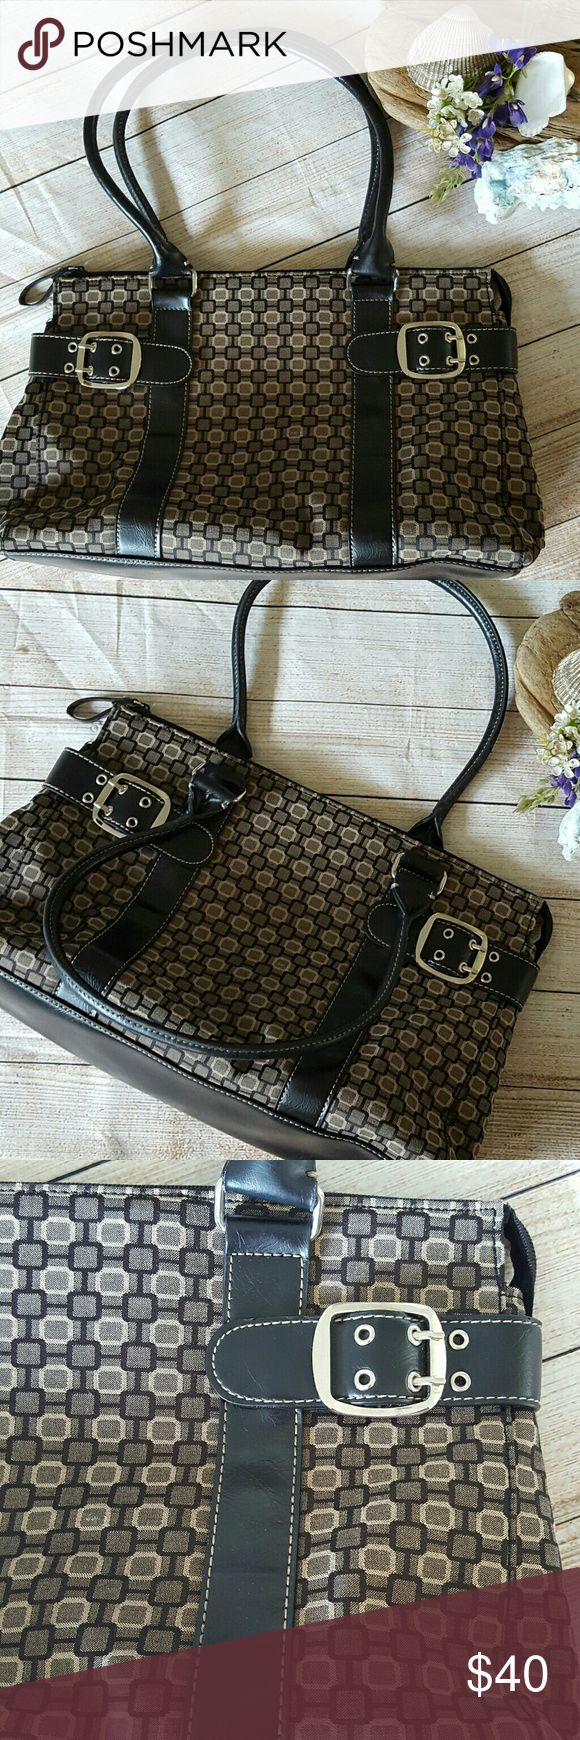 Nine West Purse Lovely Cloth Nine West Purse is in excellent the condition Nine West Bags